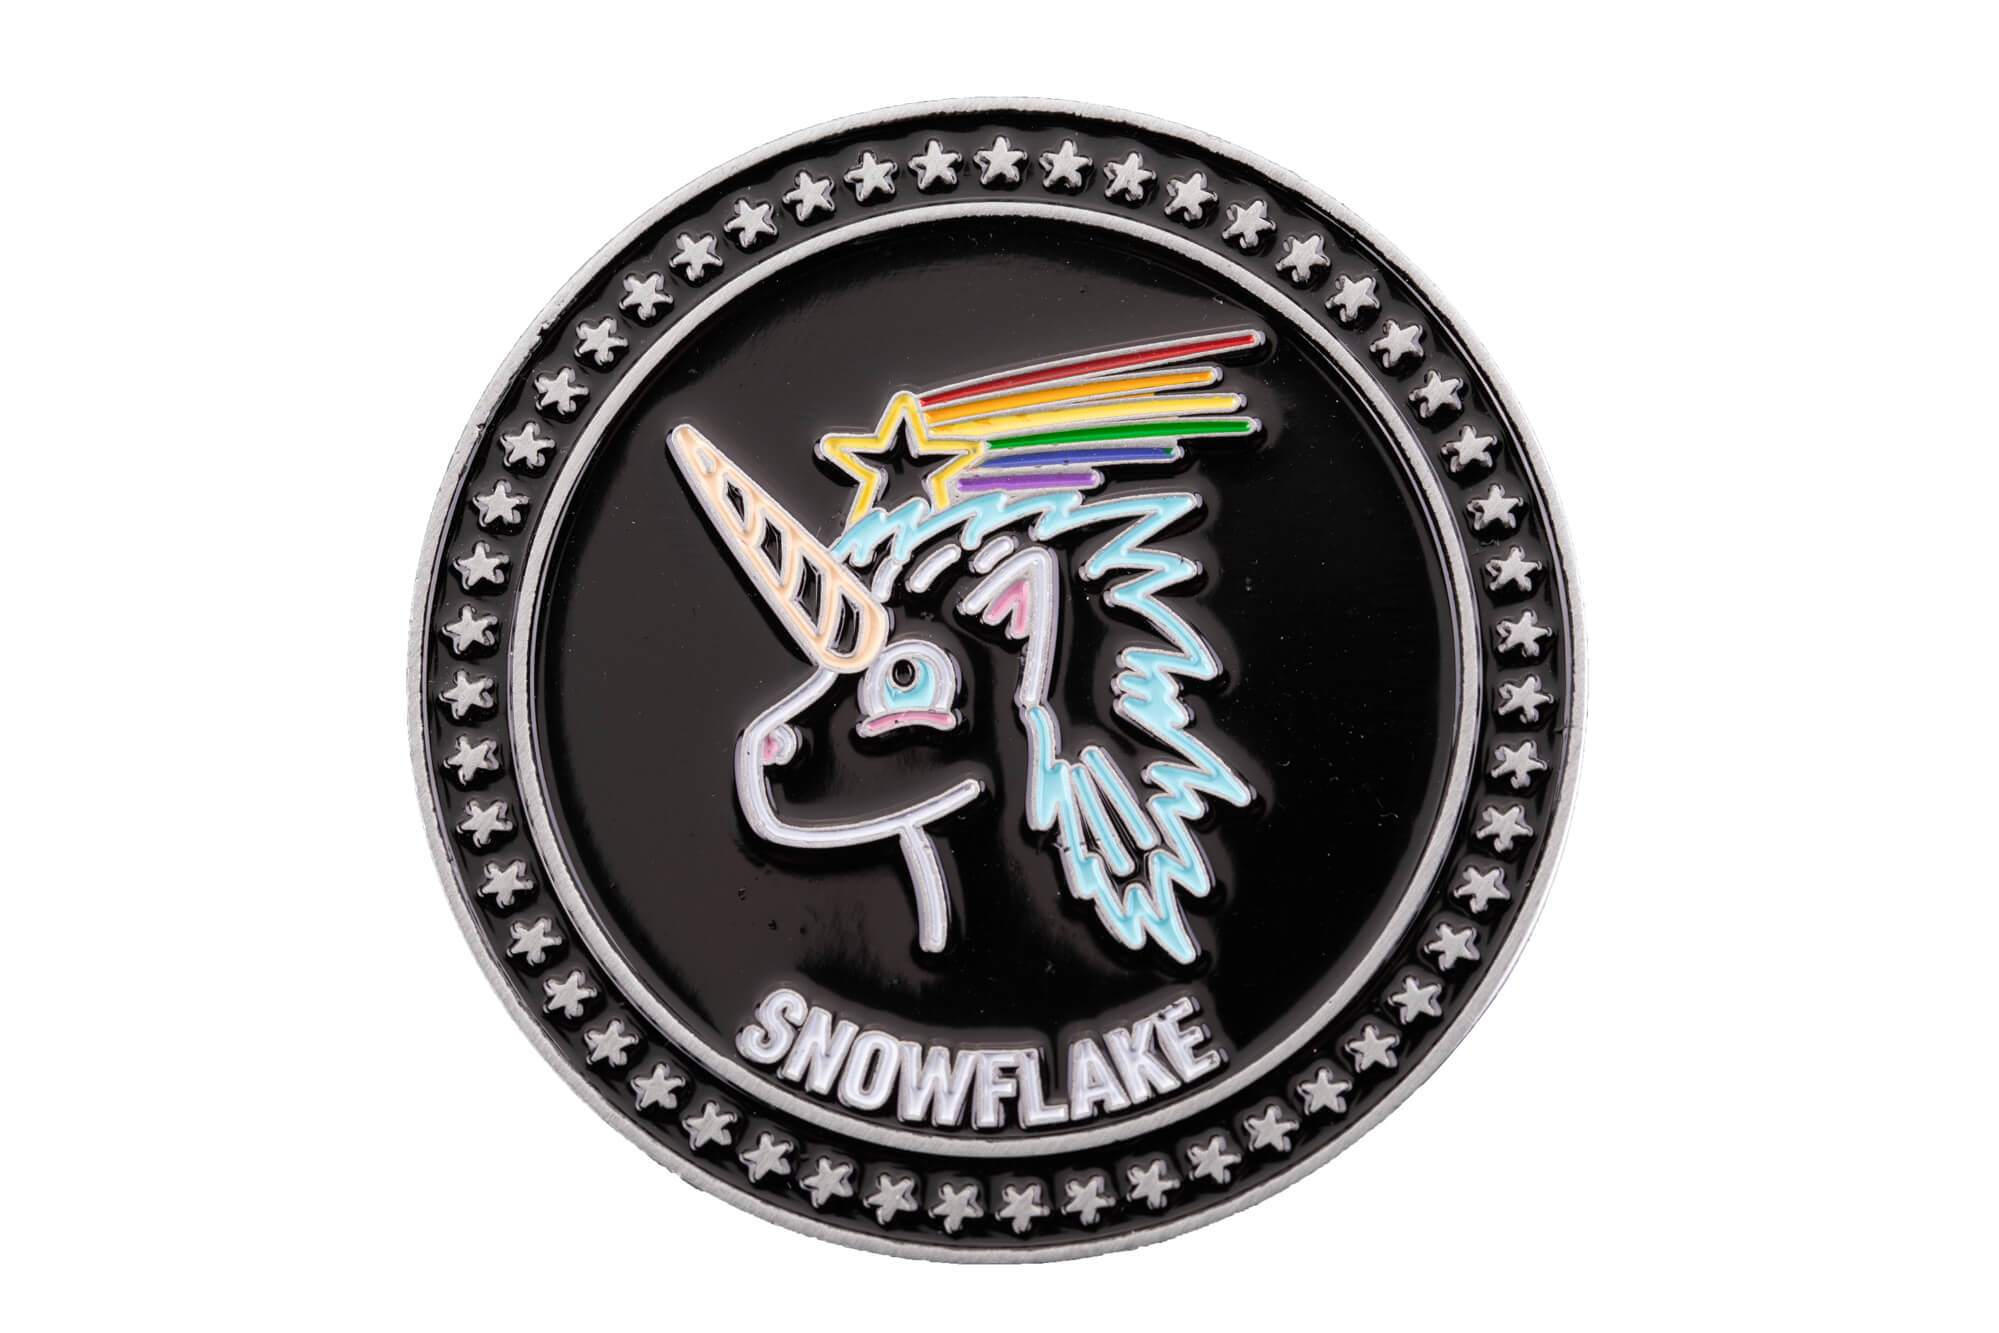 Spike's Challenge Coin Collection